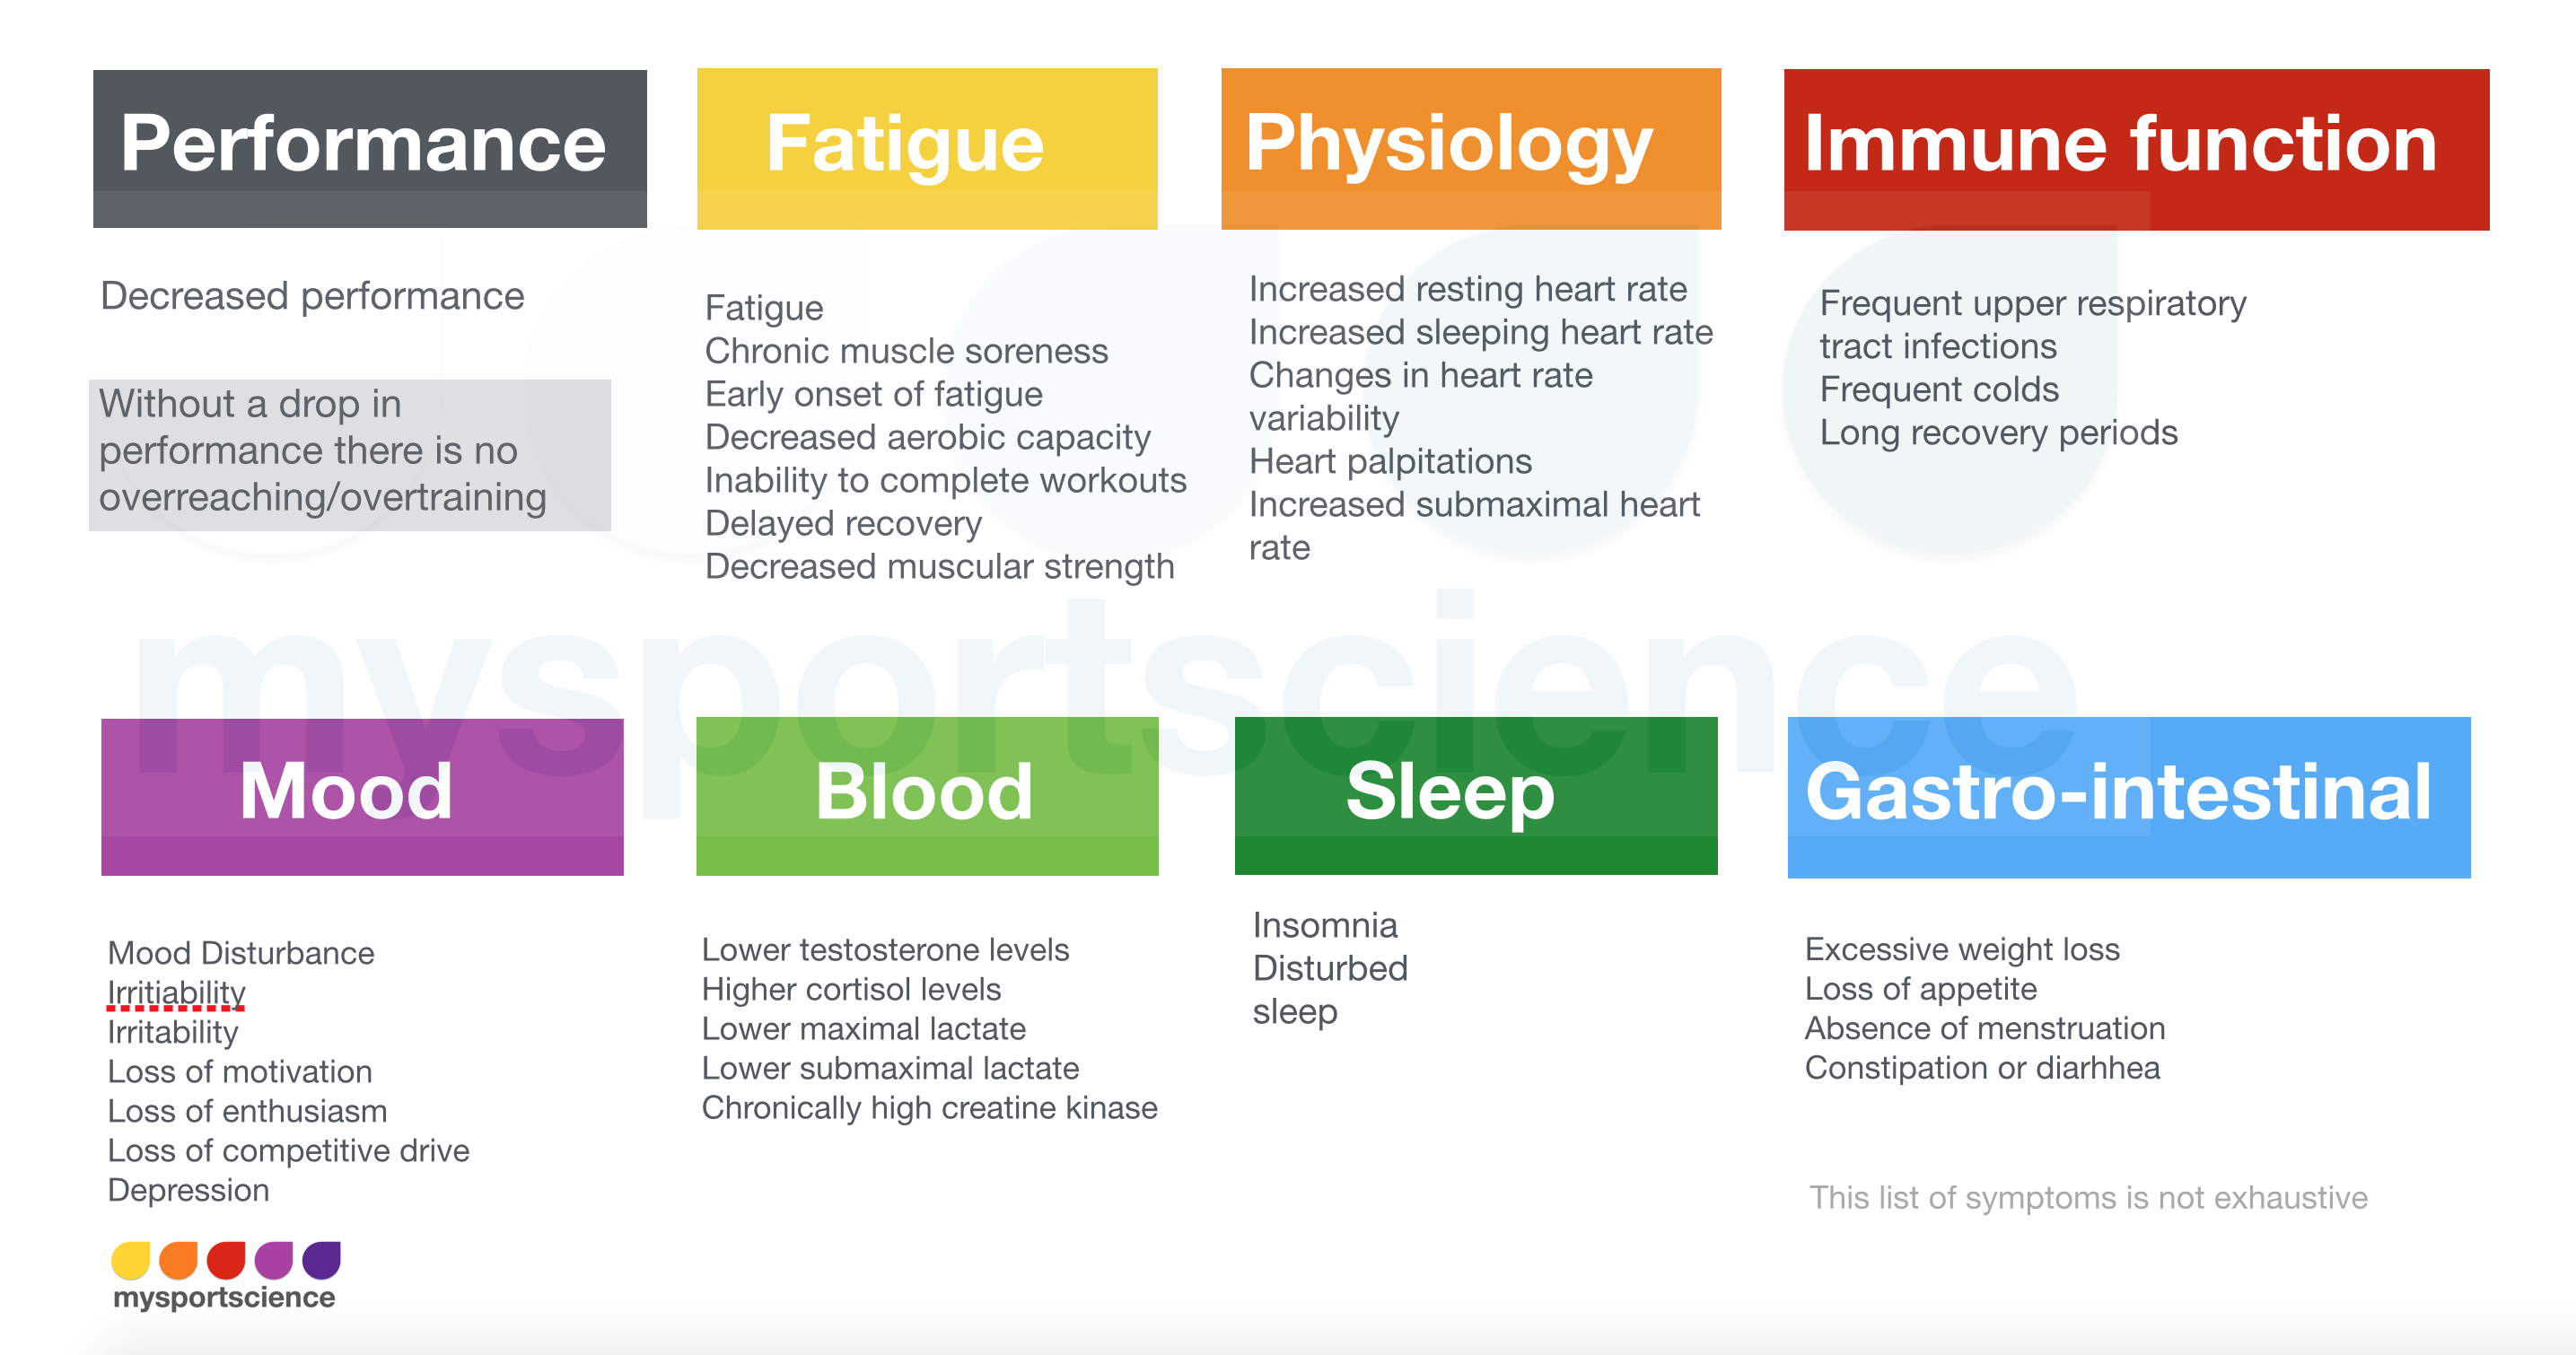 Symptoms of overtraining | Jeukendrup - Trusted sports nutrition advice & exercise science news